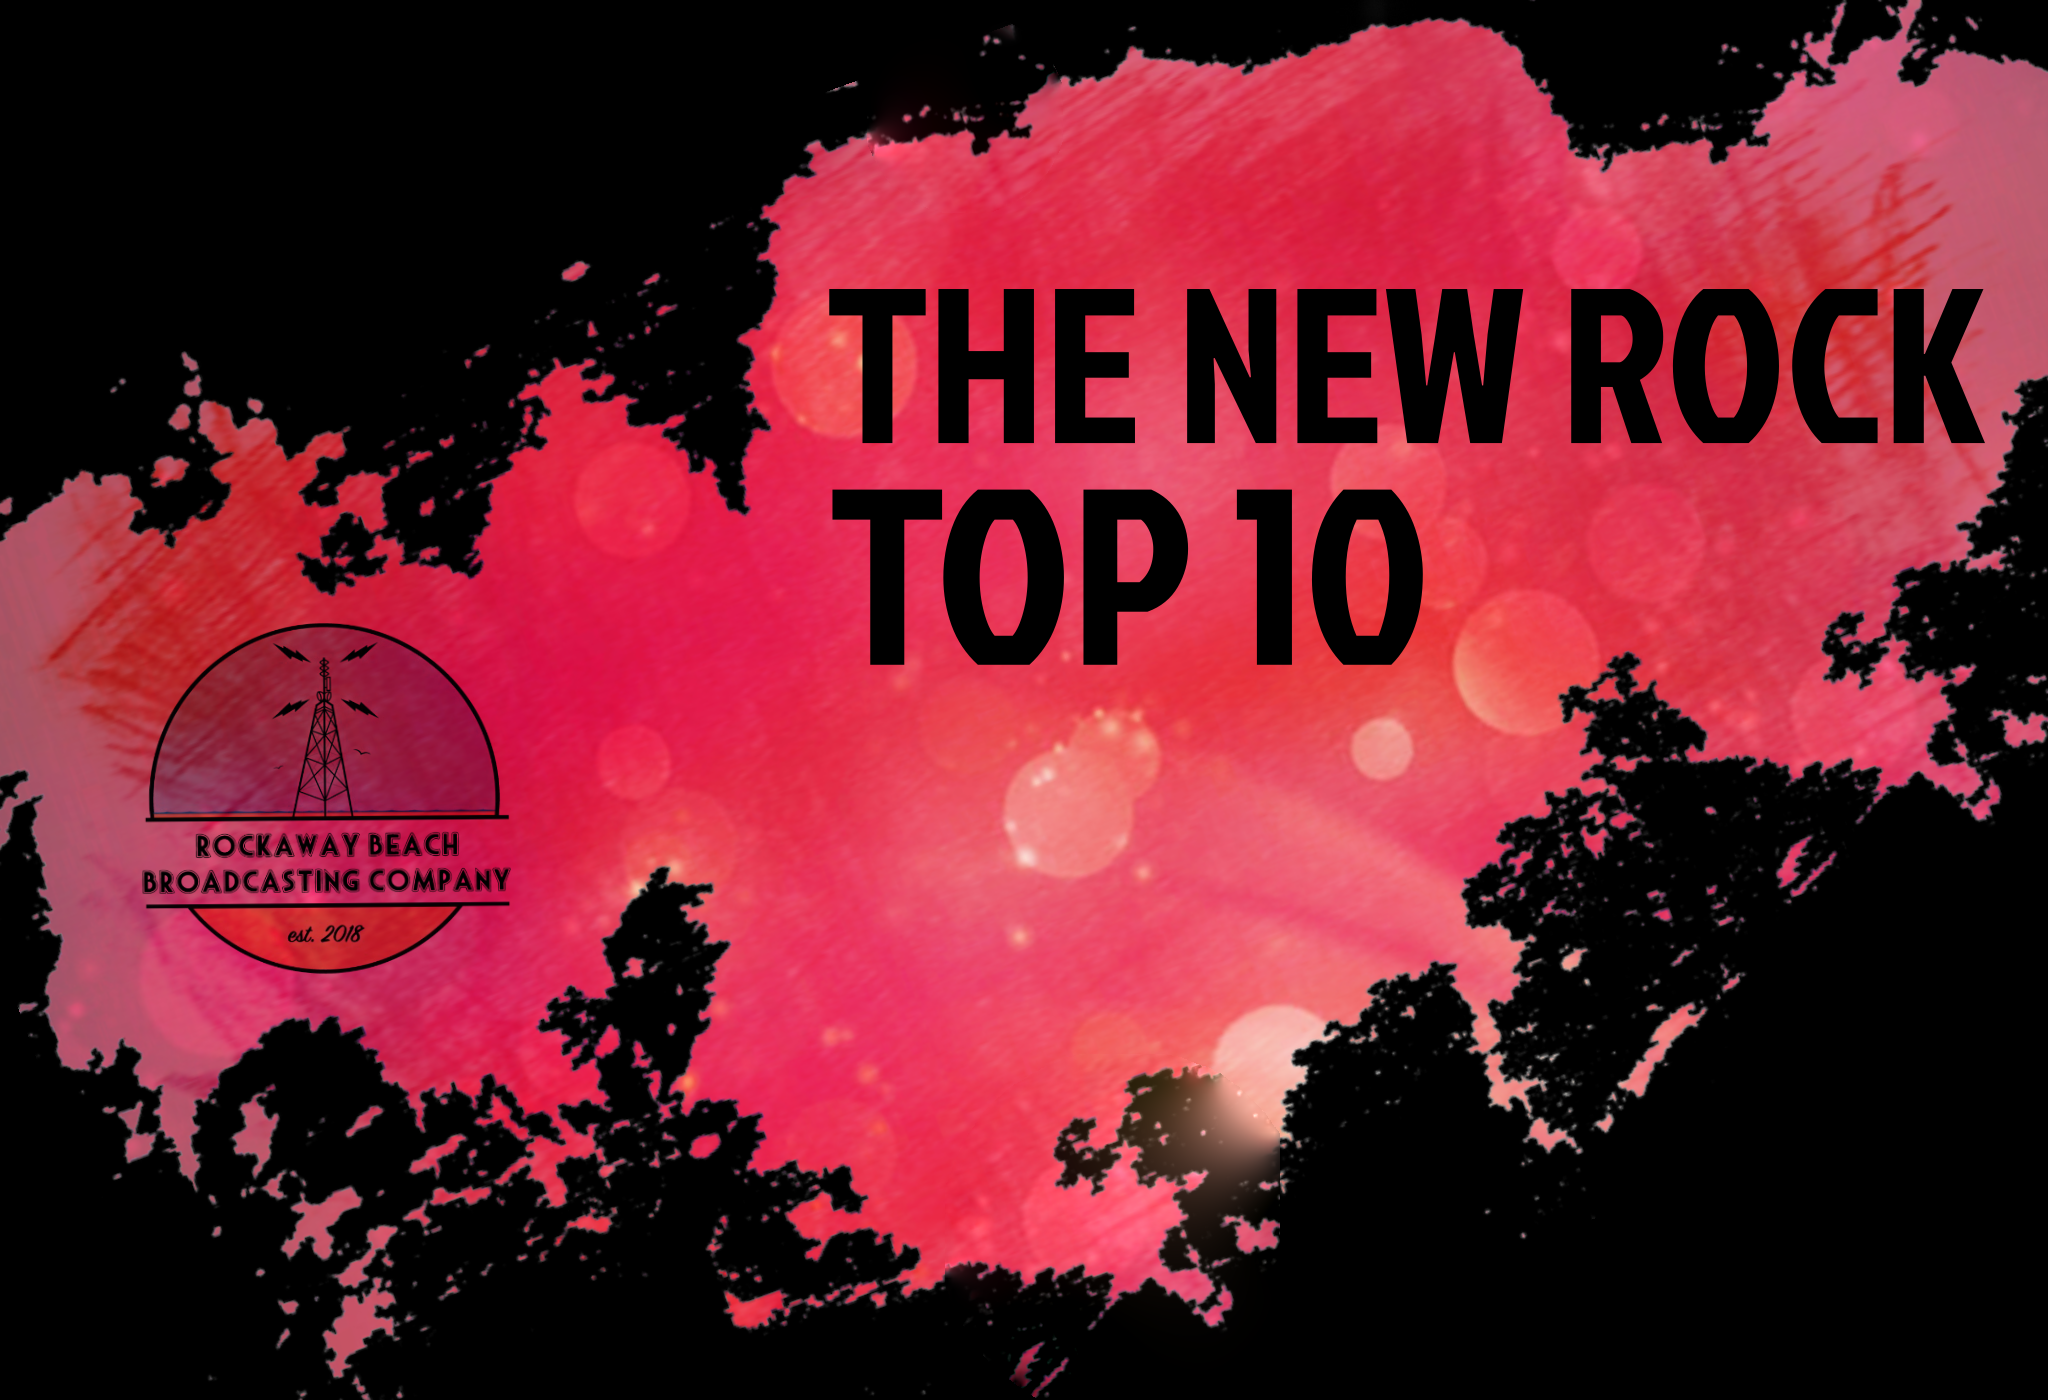 the new rock top 10 - The Top 10 new rock Tracks with alex shenitsky! Every Sunday at 8PMArchived Shows